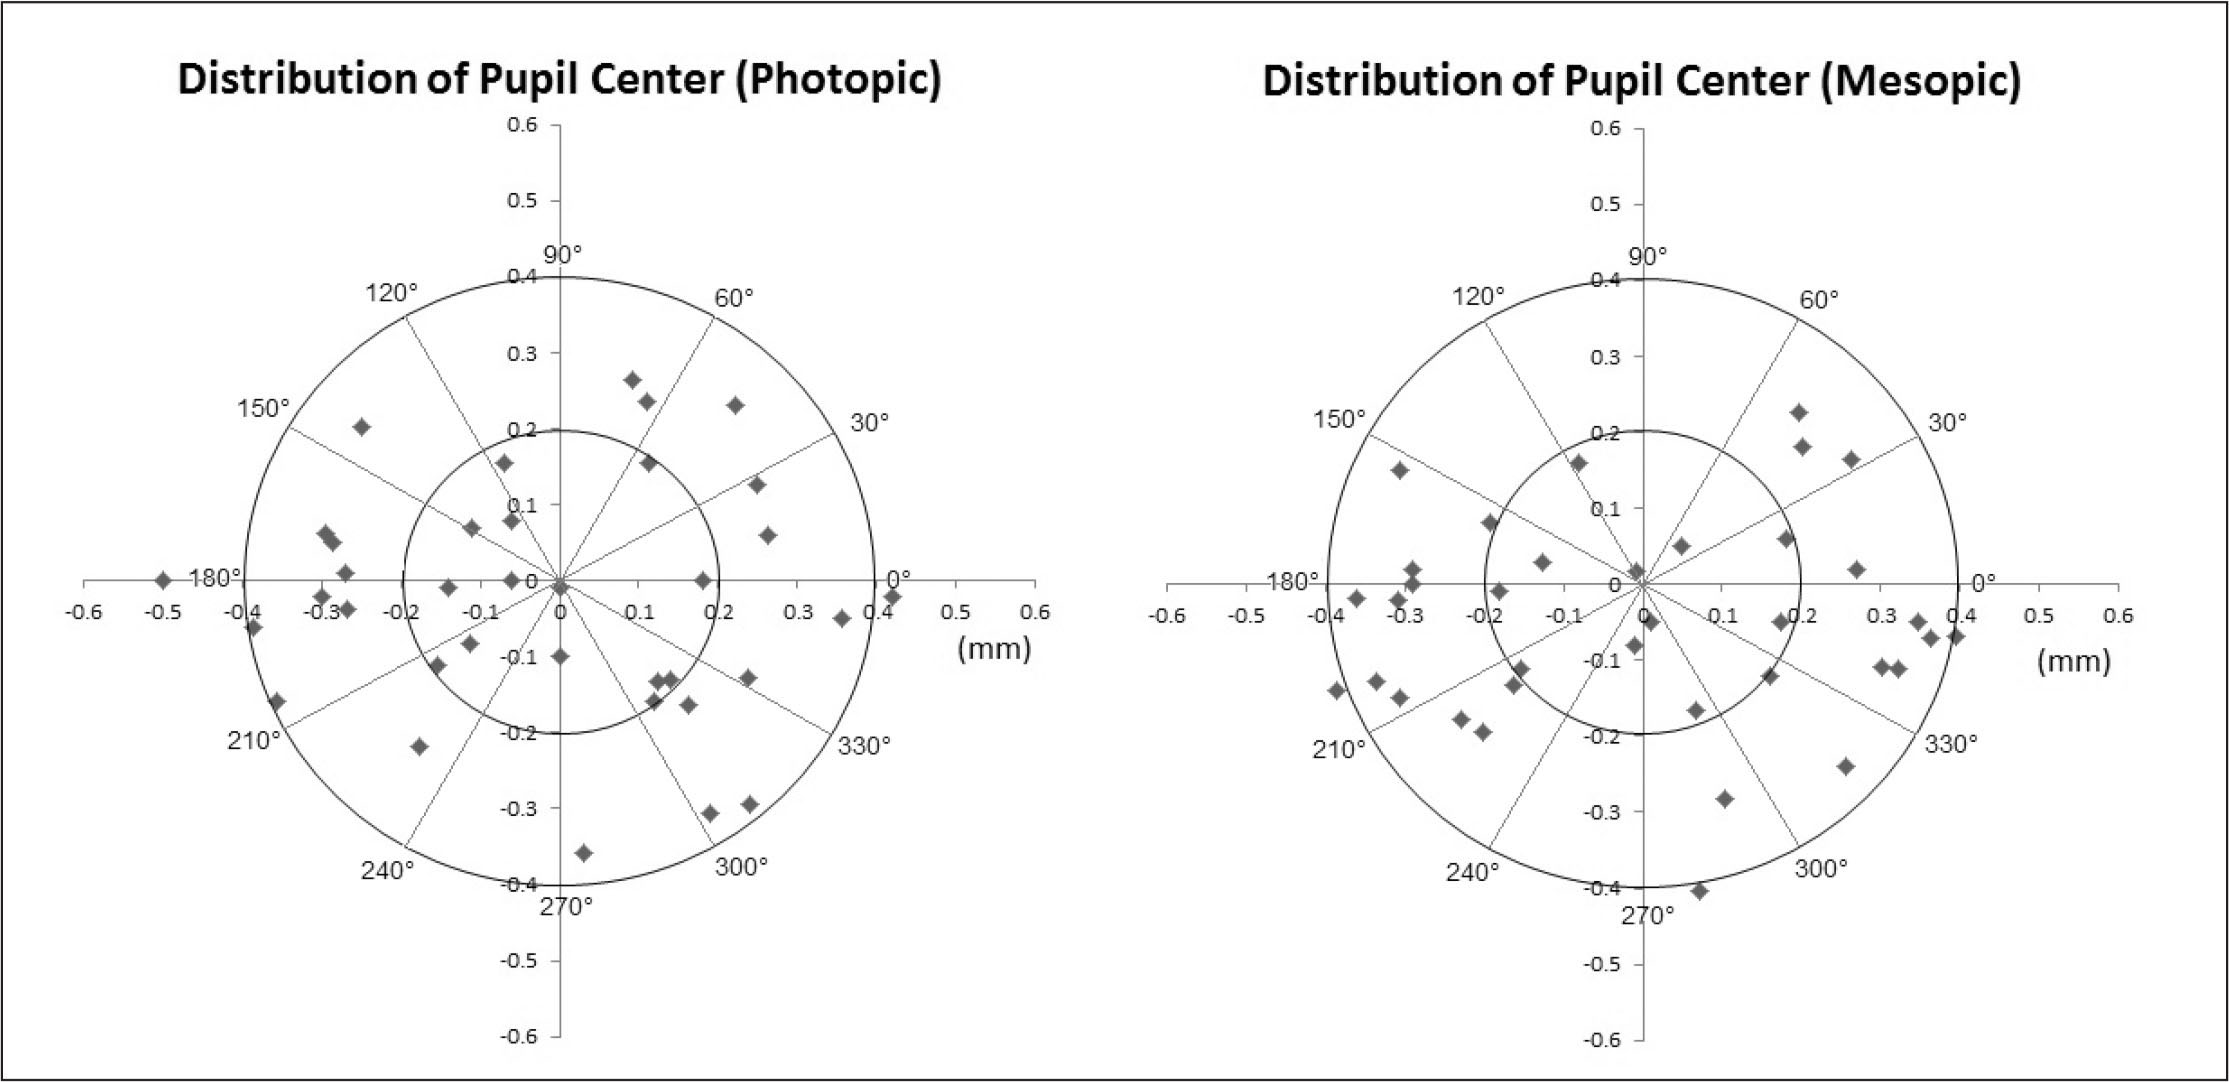 The distribution of all preoperative pupil centers. The left figure shows the photopic pupil centers; the right figure shows the mesopic pupil centers.